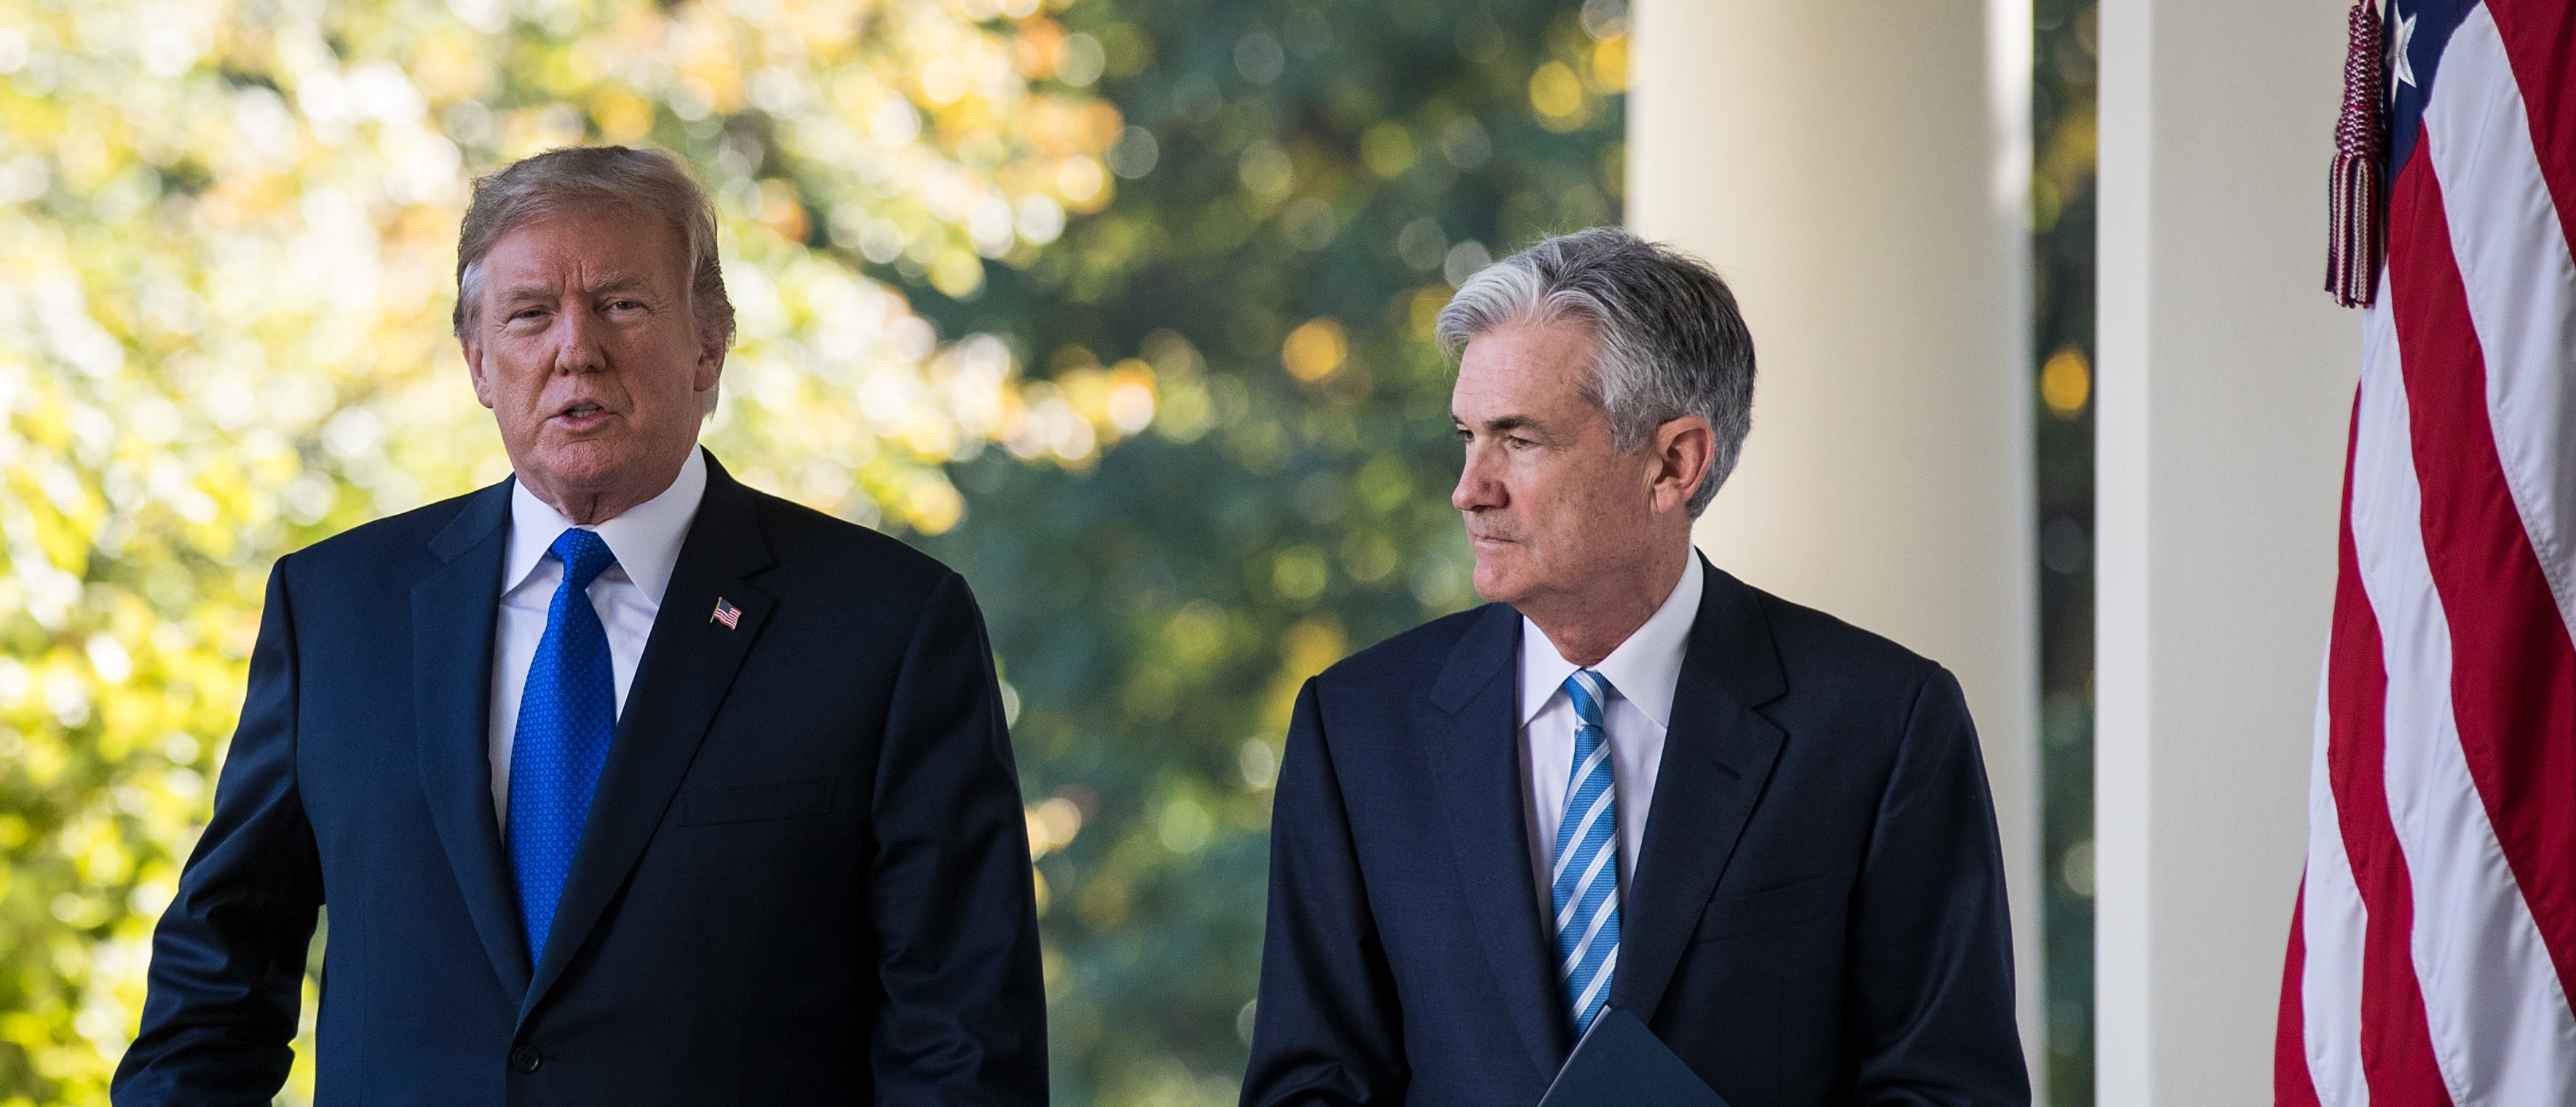 WASHINGTON, DC - NOVEMBER 02: (L to R) U.S. President Donald Trump walks with his nominee for the chairman of the Federal Reserve Jerome Powell on their way to a press event in the Rose Garden at the White House, November 2, 2017 in Washington, DC. Current Federal Reserve chair Janet Yellen's term expires in February. (Photo by Drew Angerer/Getty Images)